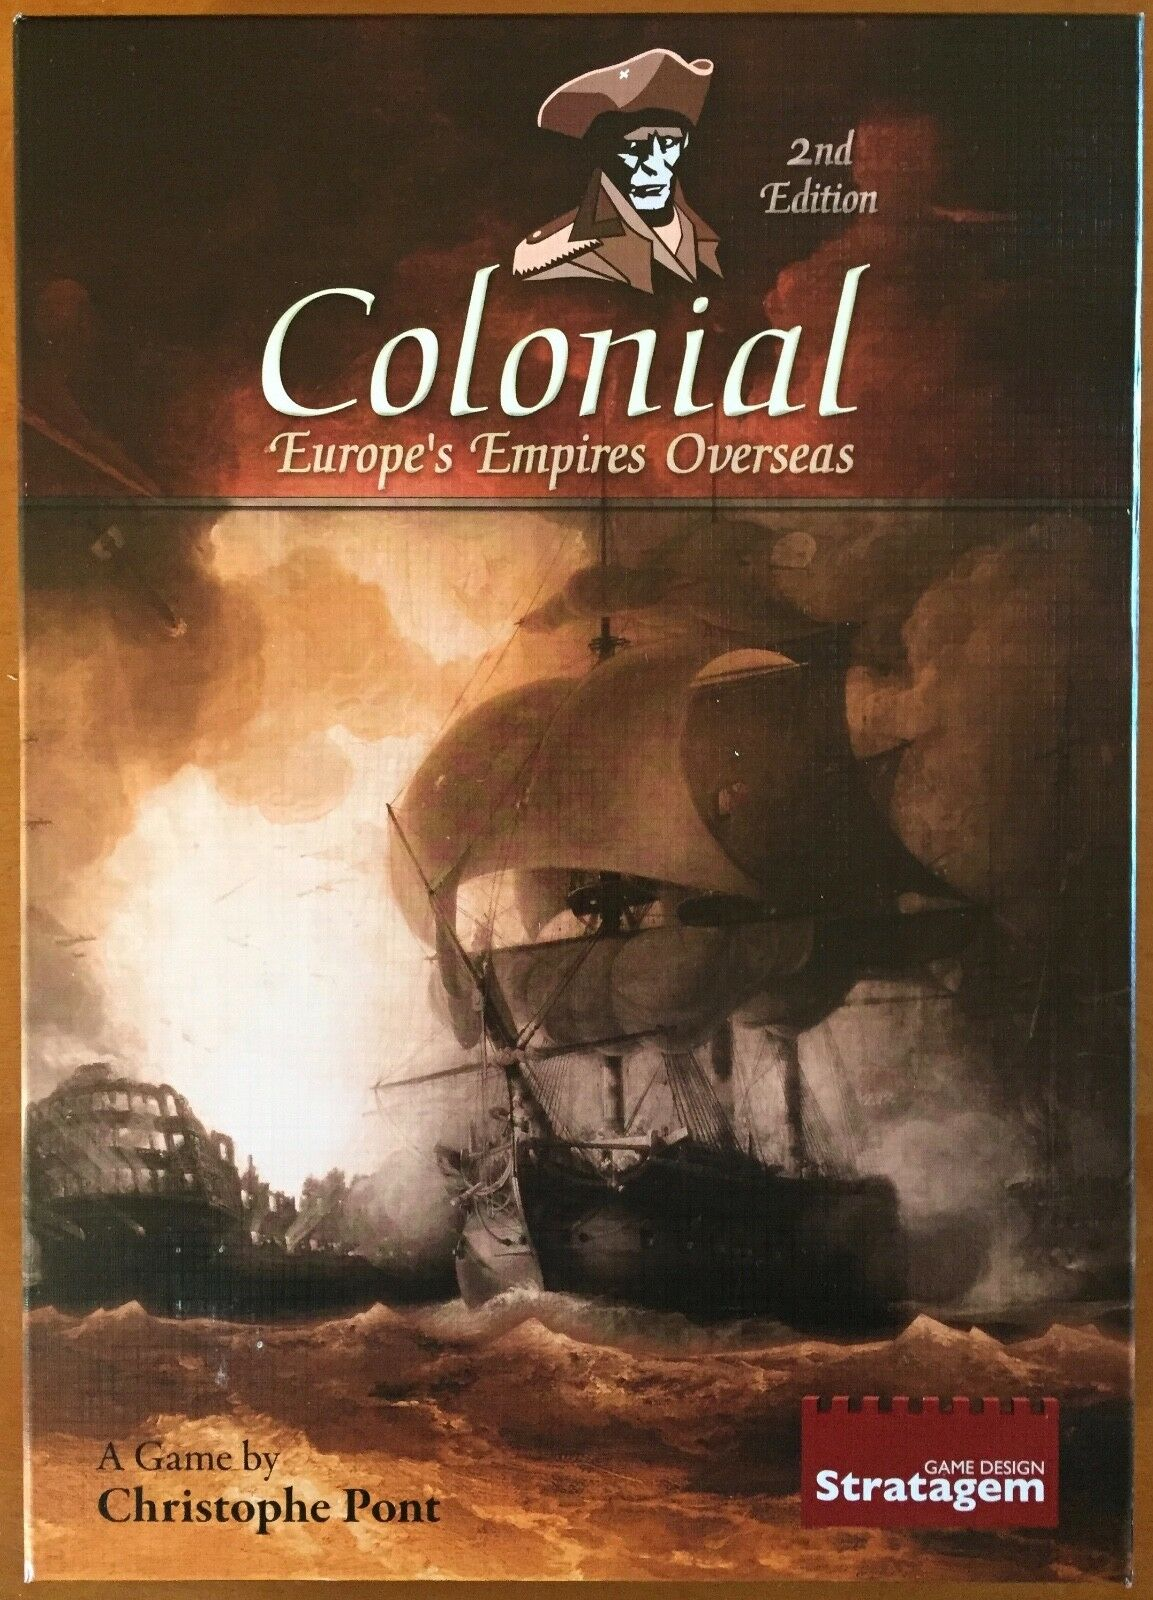 Colonial: Europe's Empires Overseas - Stratagem Game Design 2011 - UNPUNCHED